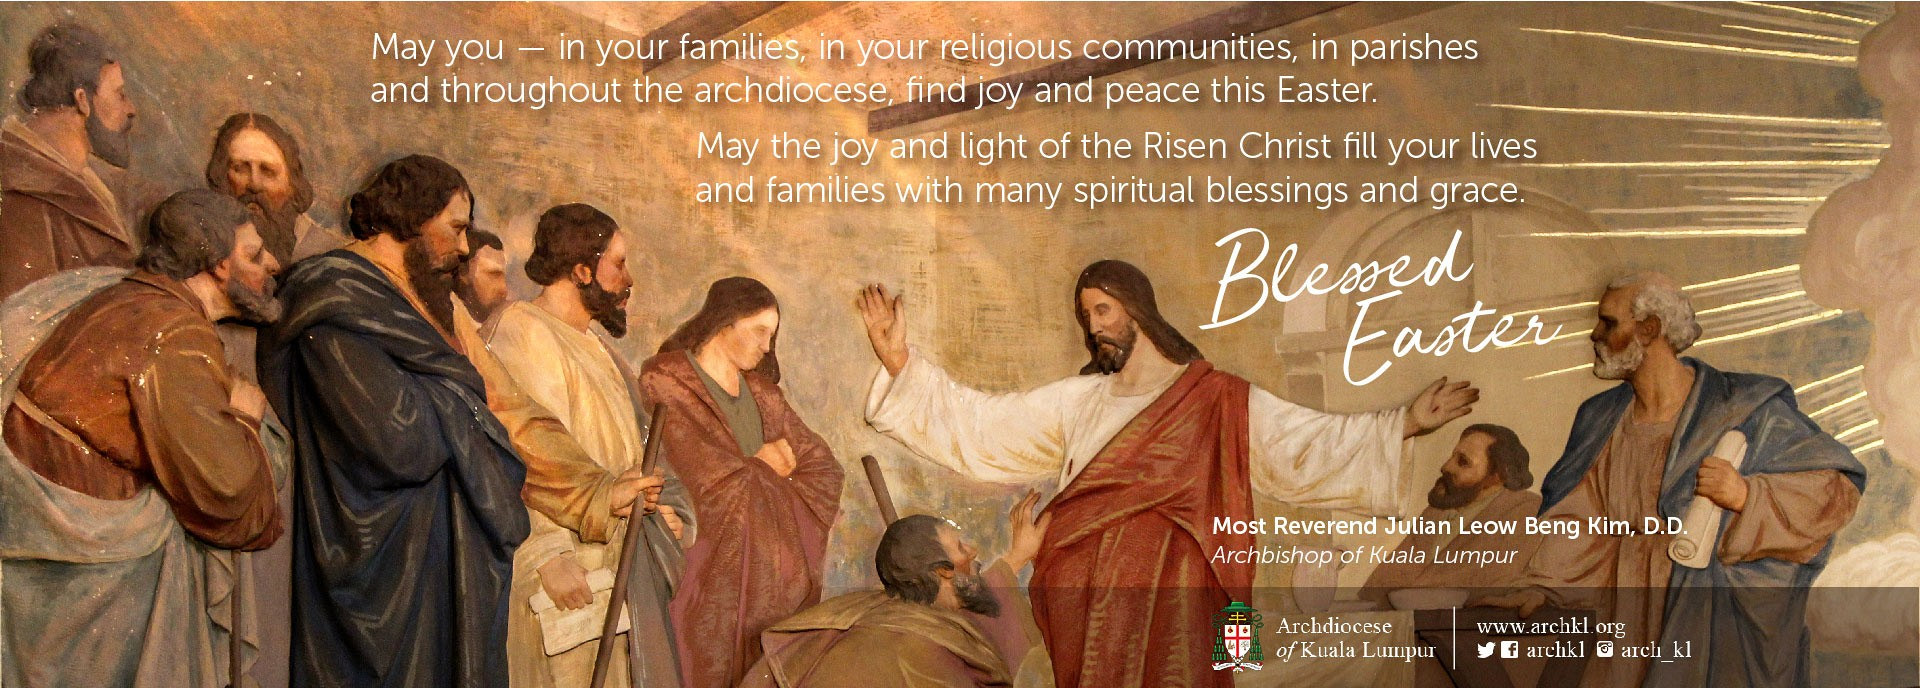 01 EasterMessage_2018